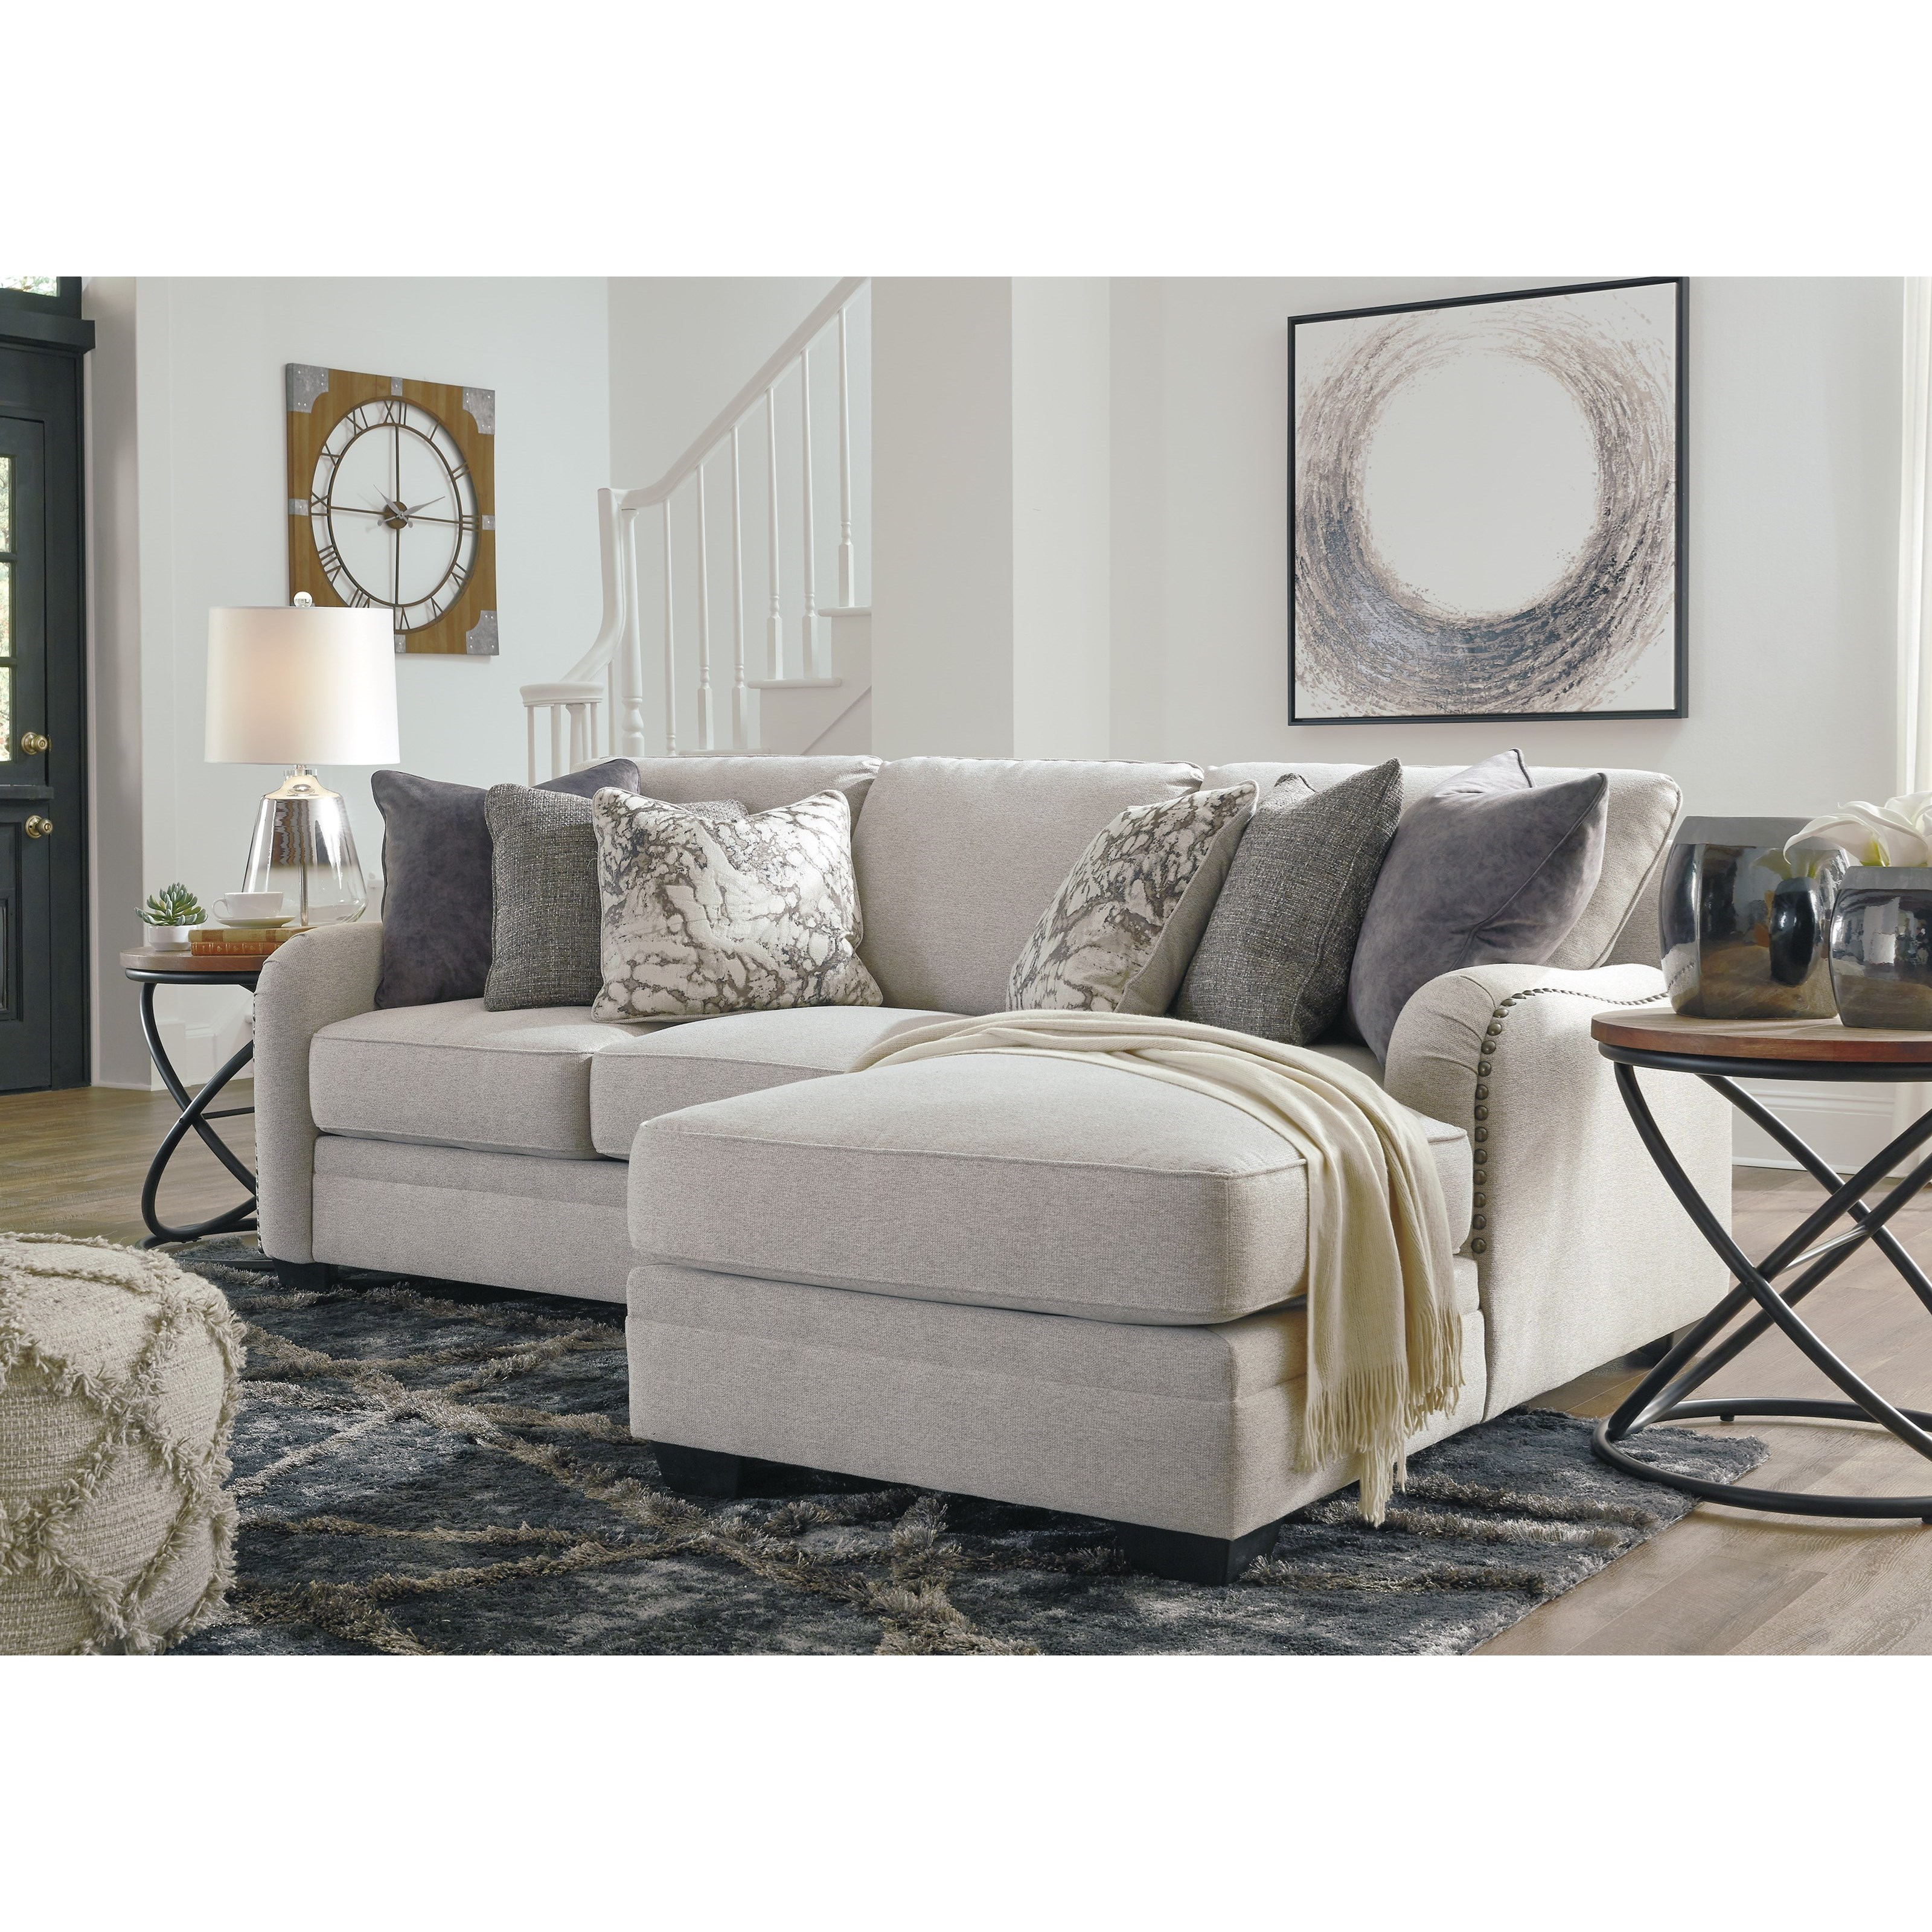 Benchcraft By Ashley Dellara Casual 2 Piece Sectional With Right Chaise Royal Furniture Sectional Sofas